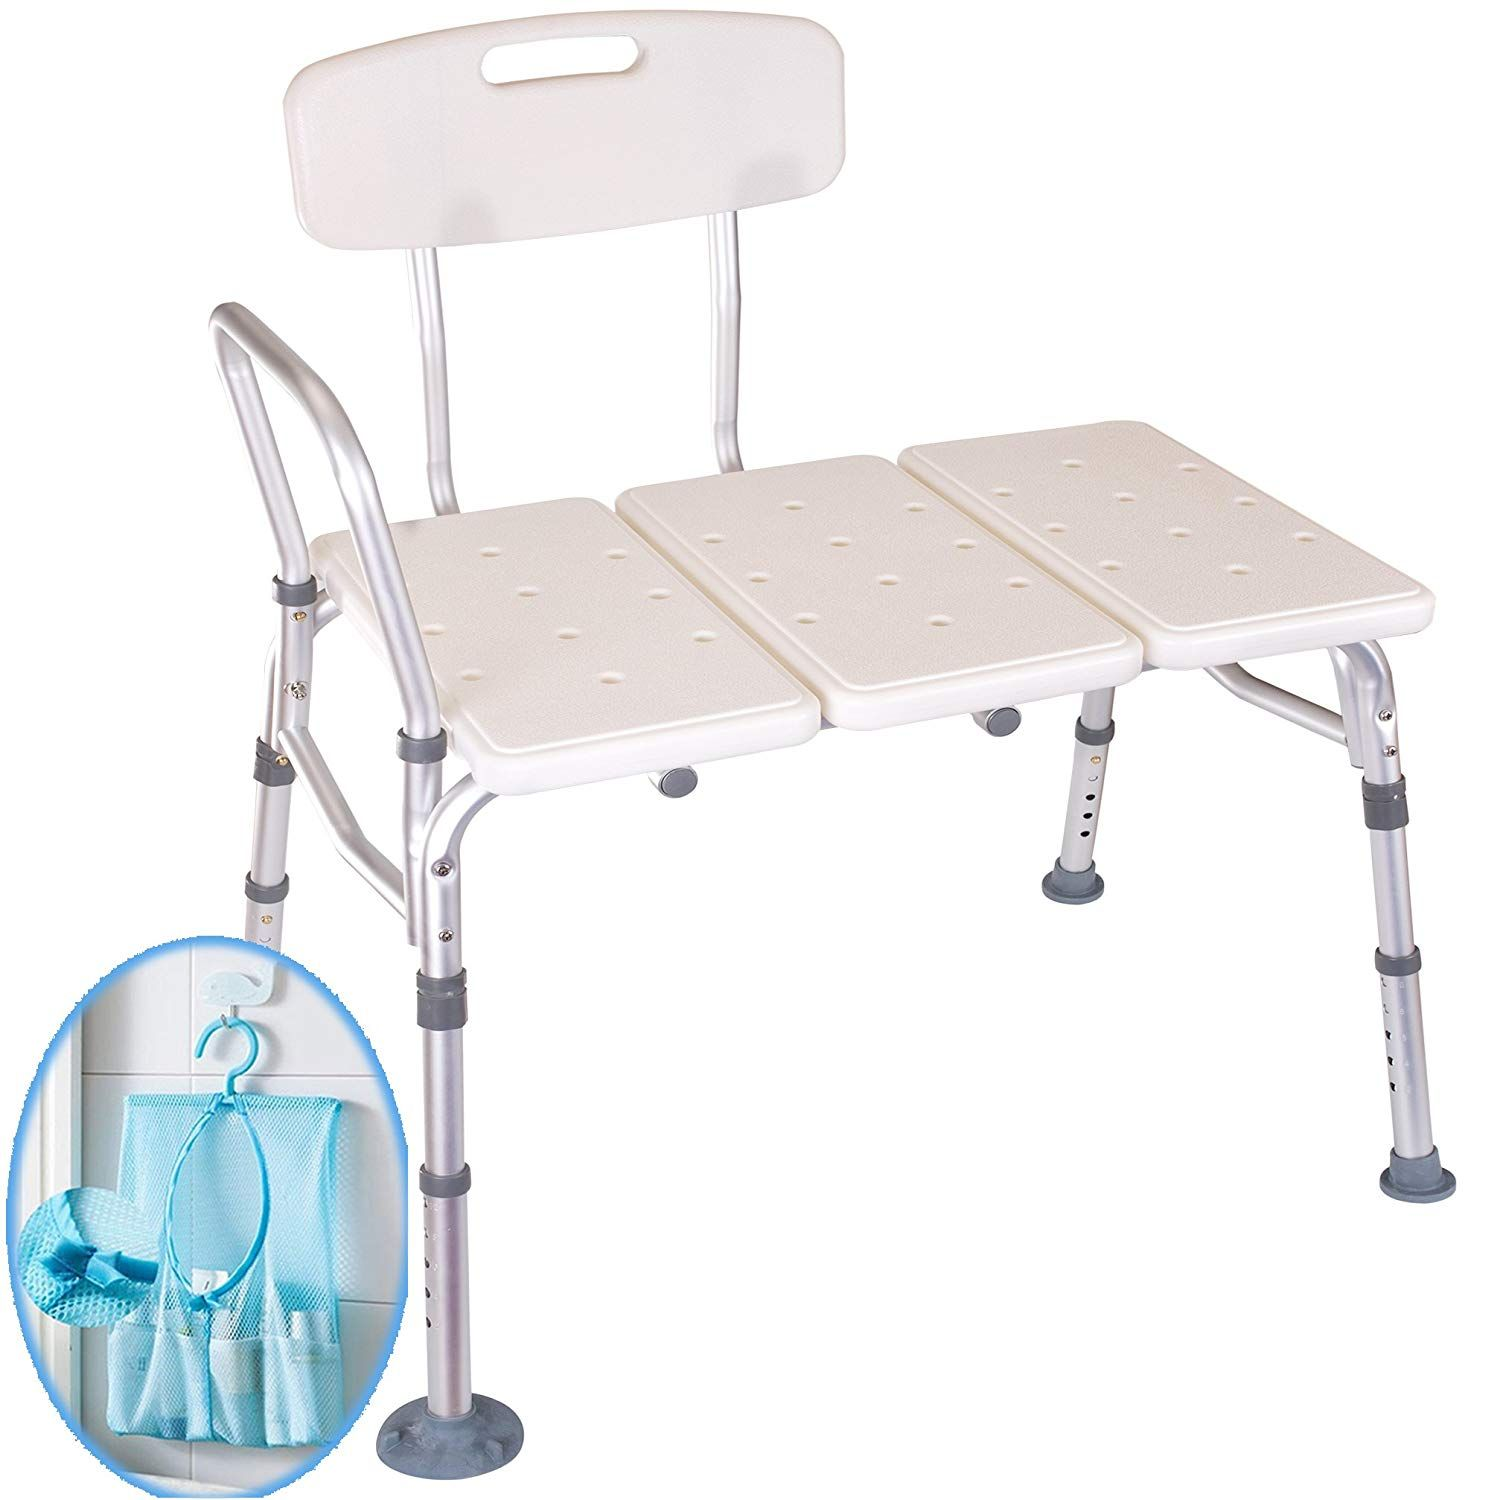 Medokare Shower Transfer Bench Seat – Over Tub Transfer